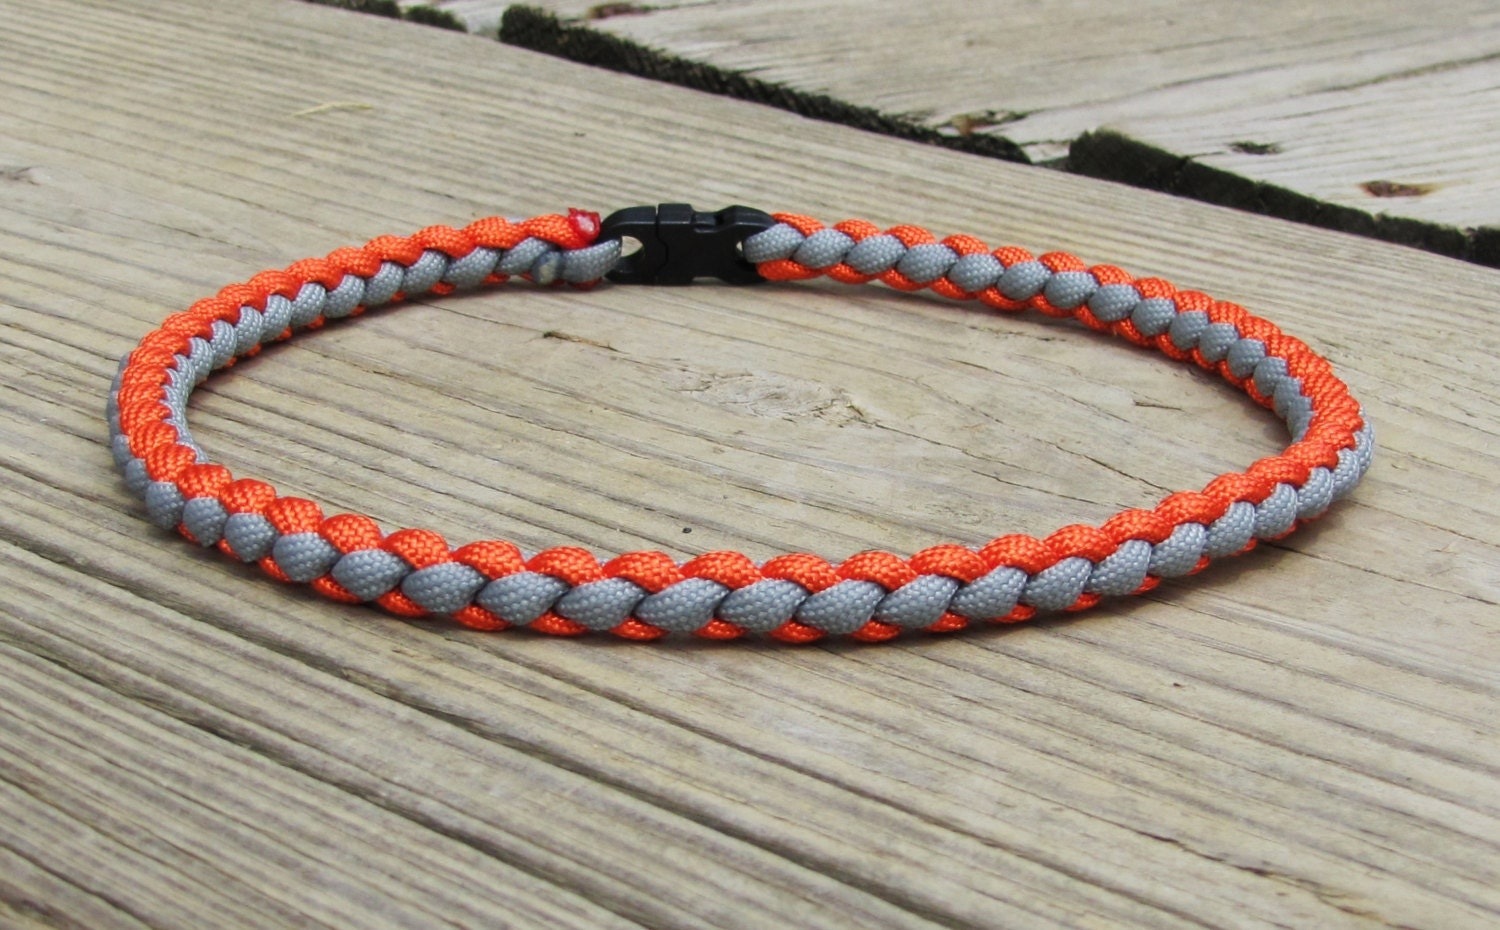 braided paracord necklace or bracelet by